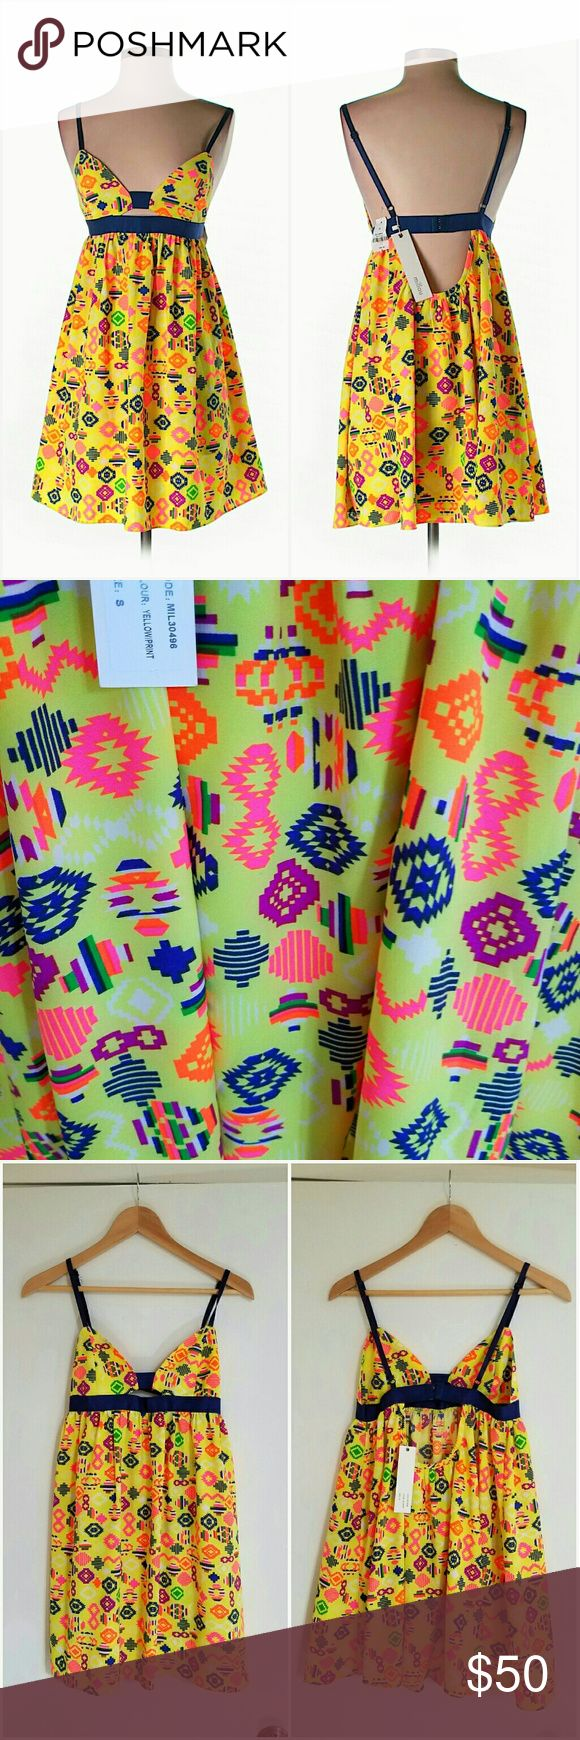 """NWT LF Neon Yellow Aztec Cutout Sun Dress Brand new w/ tags. Neon yellow Aztec print dress w/ green, navy, yellow, & neon pink & orange accents. Triangle cups & cutout front. Adjustable straps. Navy elastic band waist w/ bra-like adjustable hook & eye closure. Scoop back. 100% Polyester. Retailed for $178 at LF. By Millau. Sz S.   Length= 30"""" shoulder to hem but can go up/down depending on strap length. Last pic modeled same dress, diff print.  Please check out my closet for more NWT LF…"""